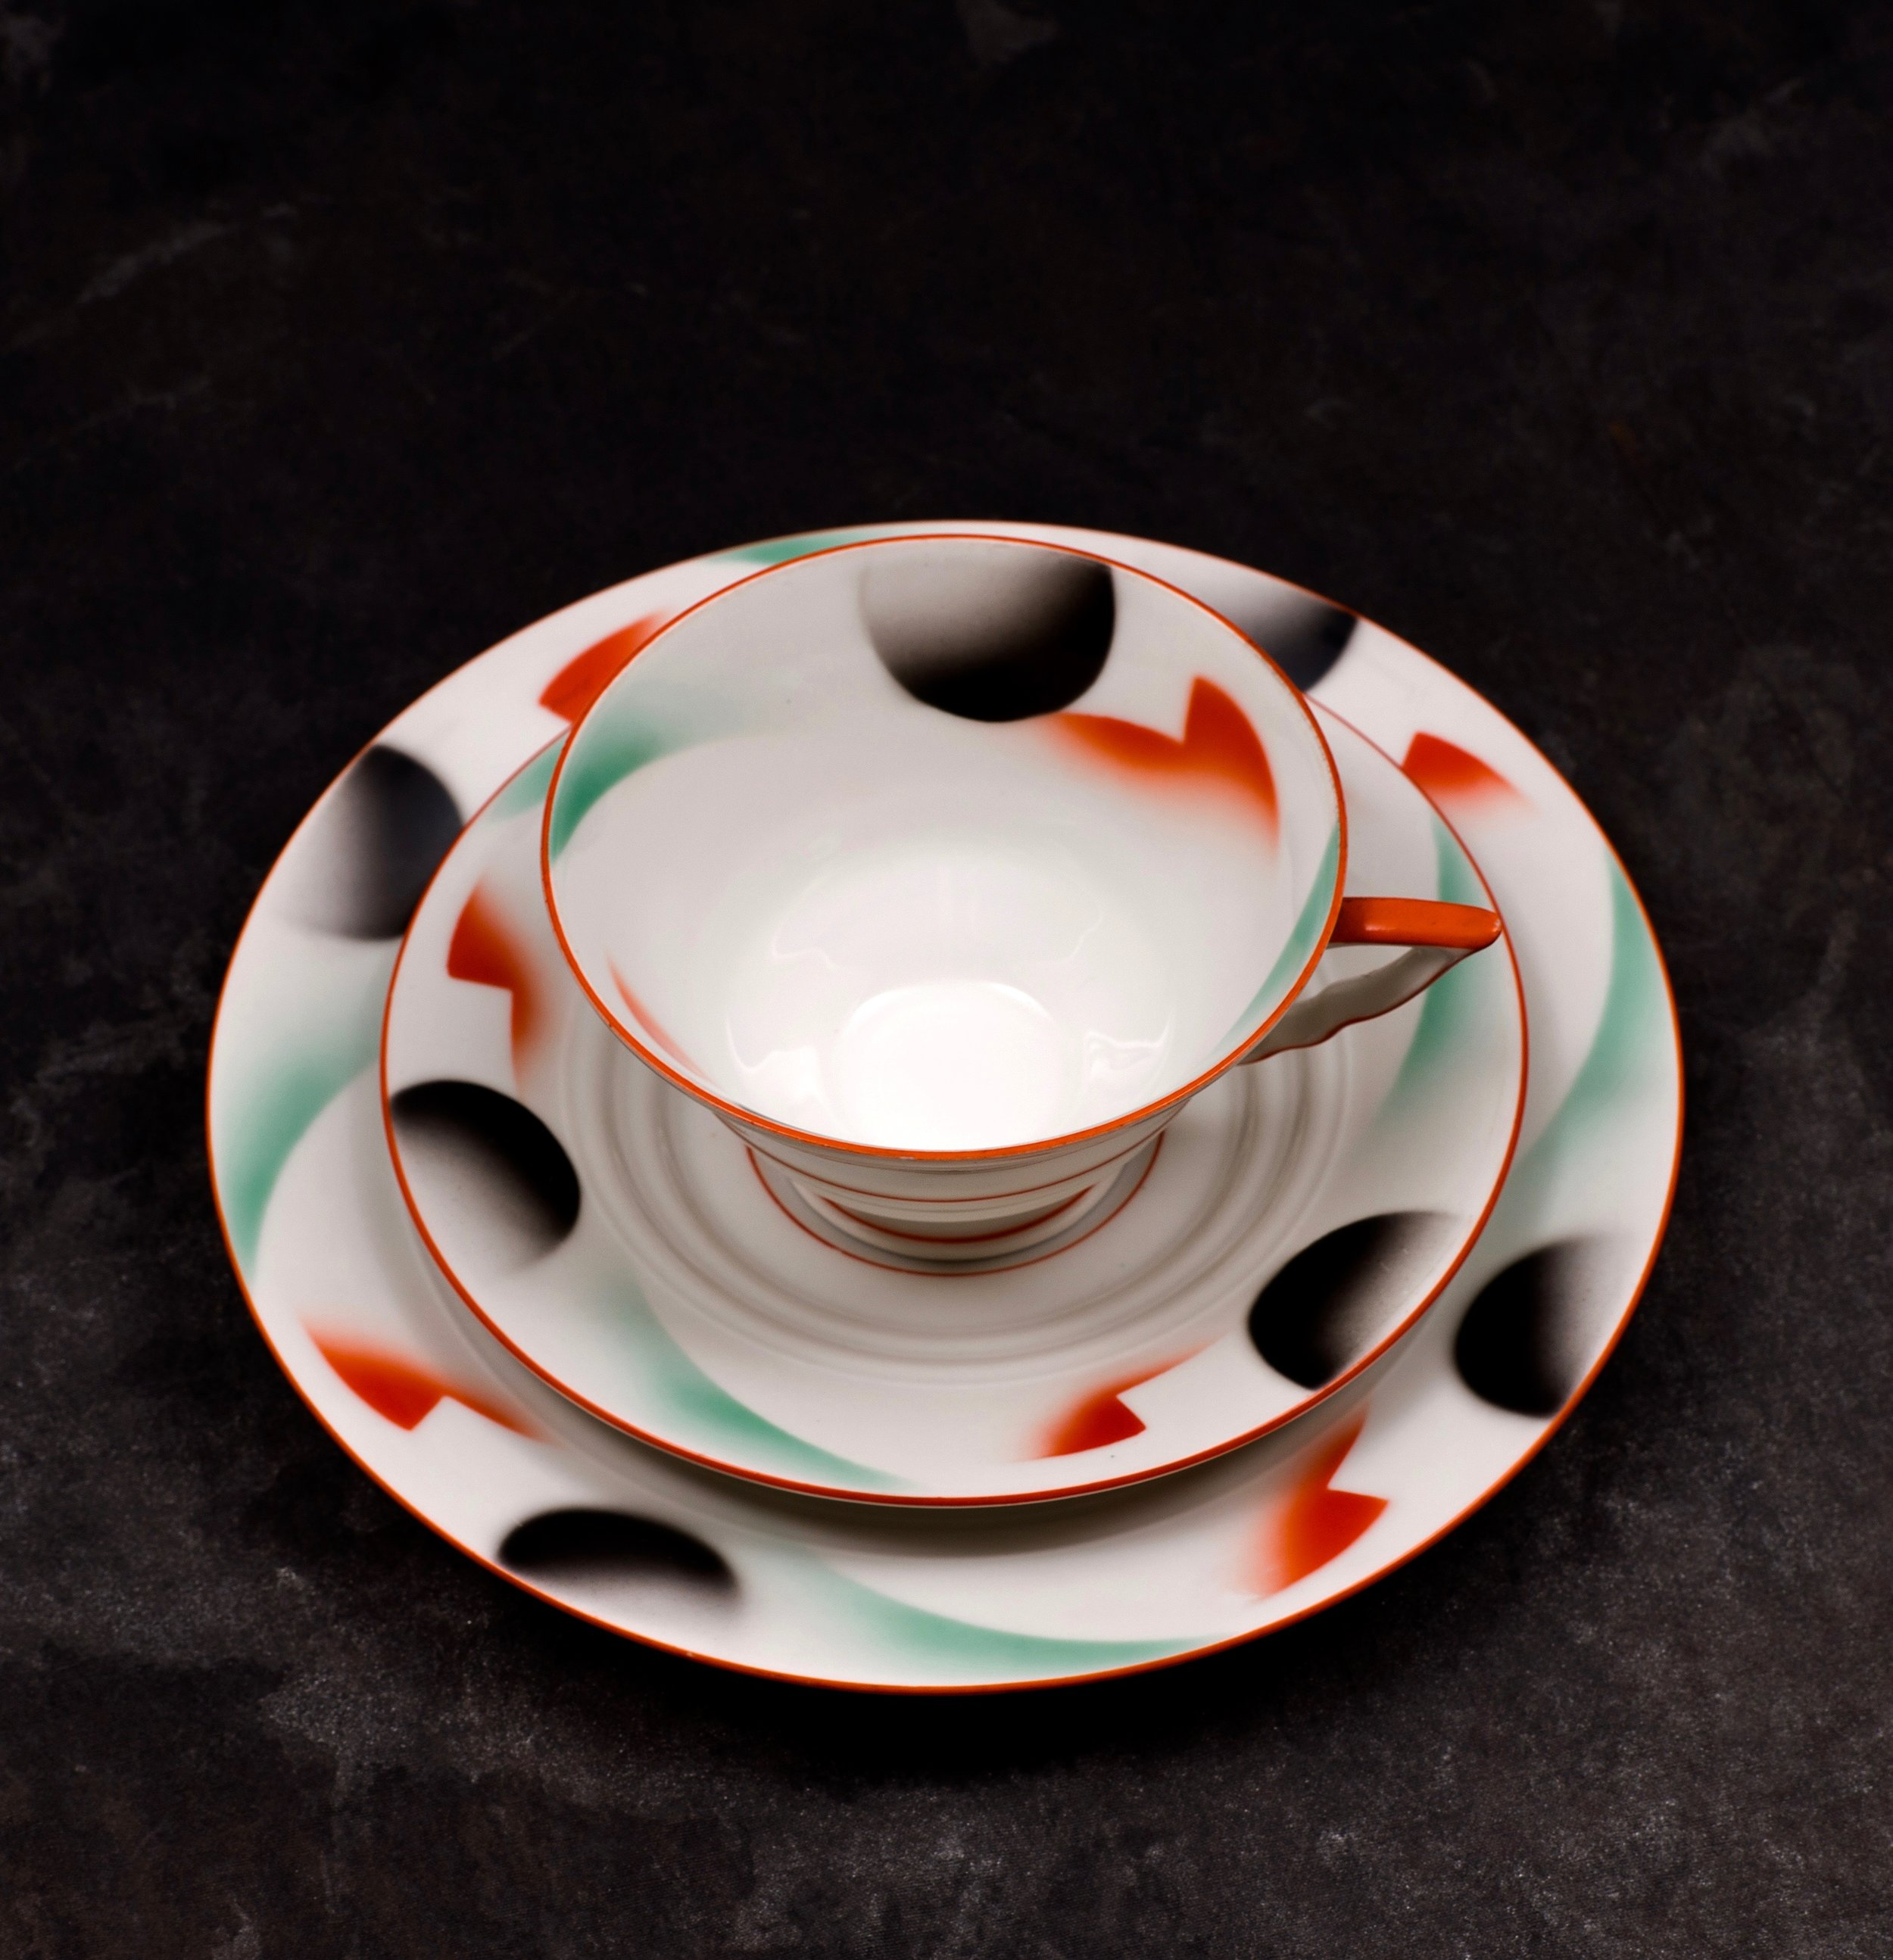 #102 Cup, saucer and plate, Porzellanfabrik Kahla, ca.1930-1932. Green mfr.; Blind cup 34/100. Cup: 5.5 cm H, 10 cm opening, 4.8 cm base Ø. Saucer: 2.2 cm H, 14.8 cm top, 7cm base Ø. Plate: 2.4 cm H, 19.2 cm top, 11 cm base Ø. RM2144